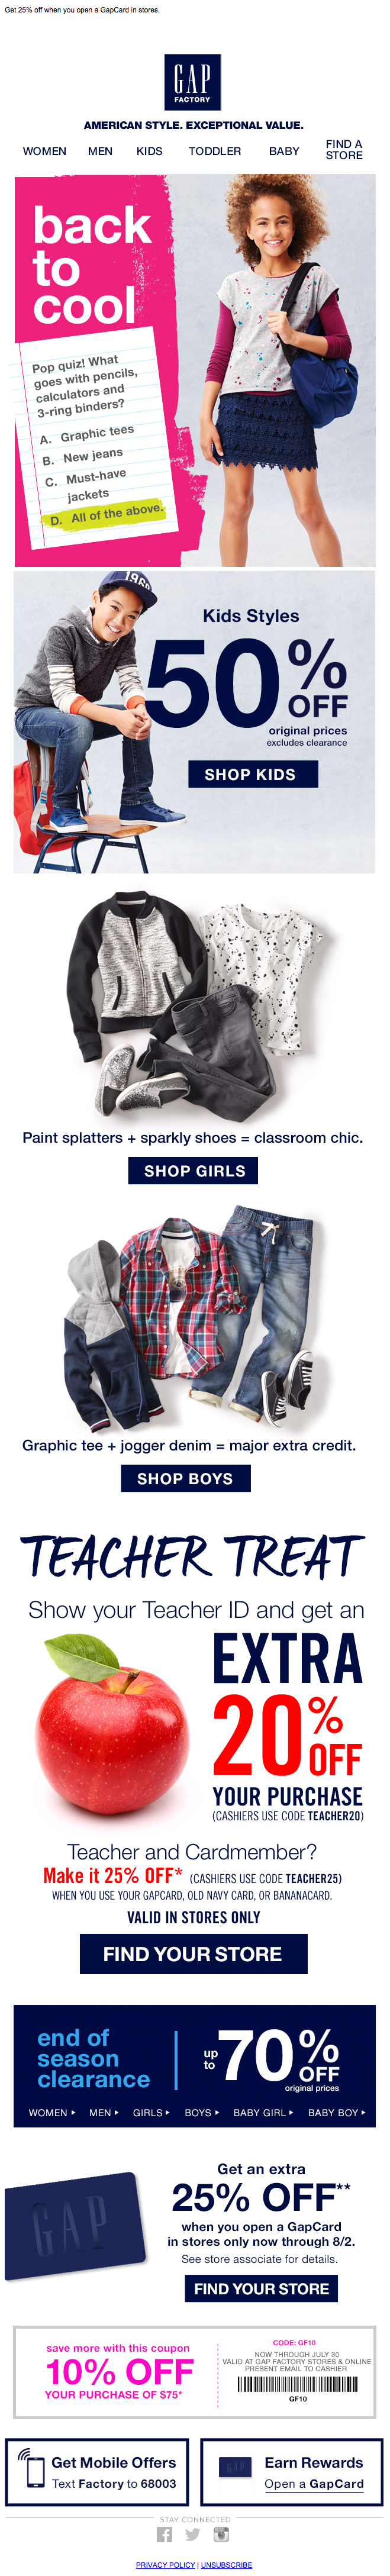 Gap back to school email 2015